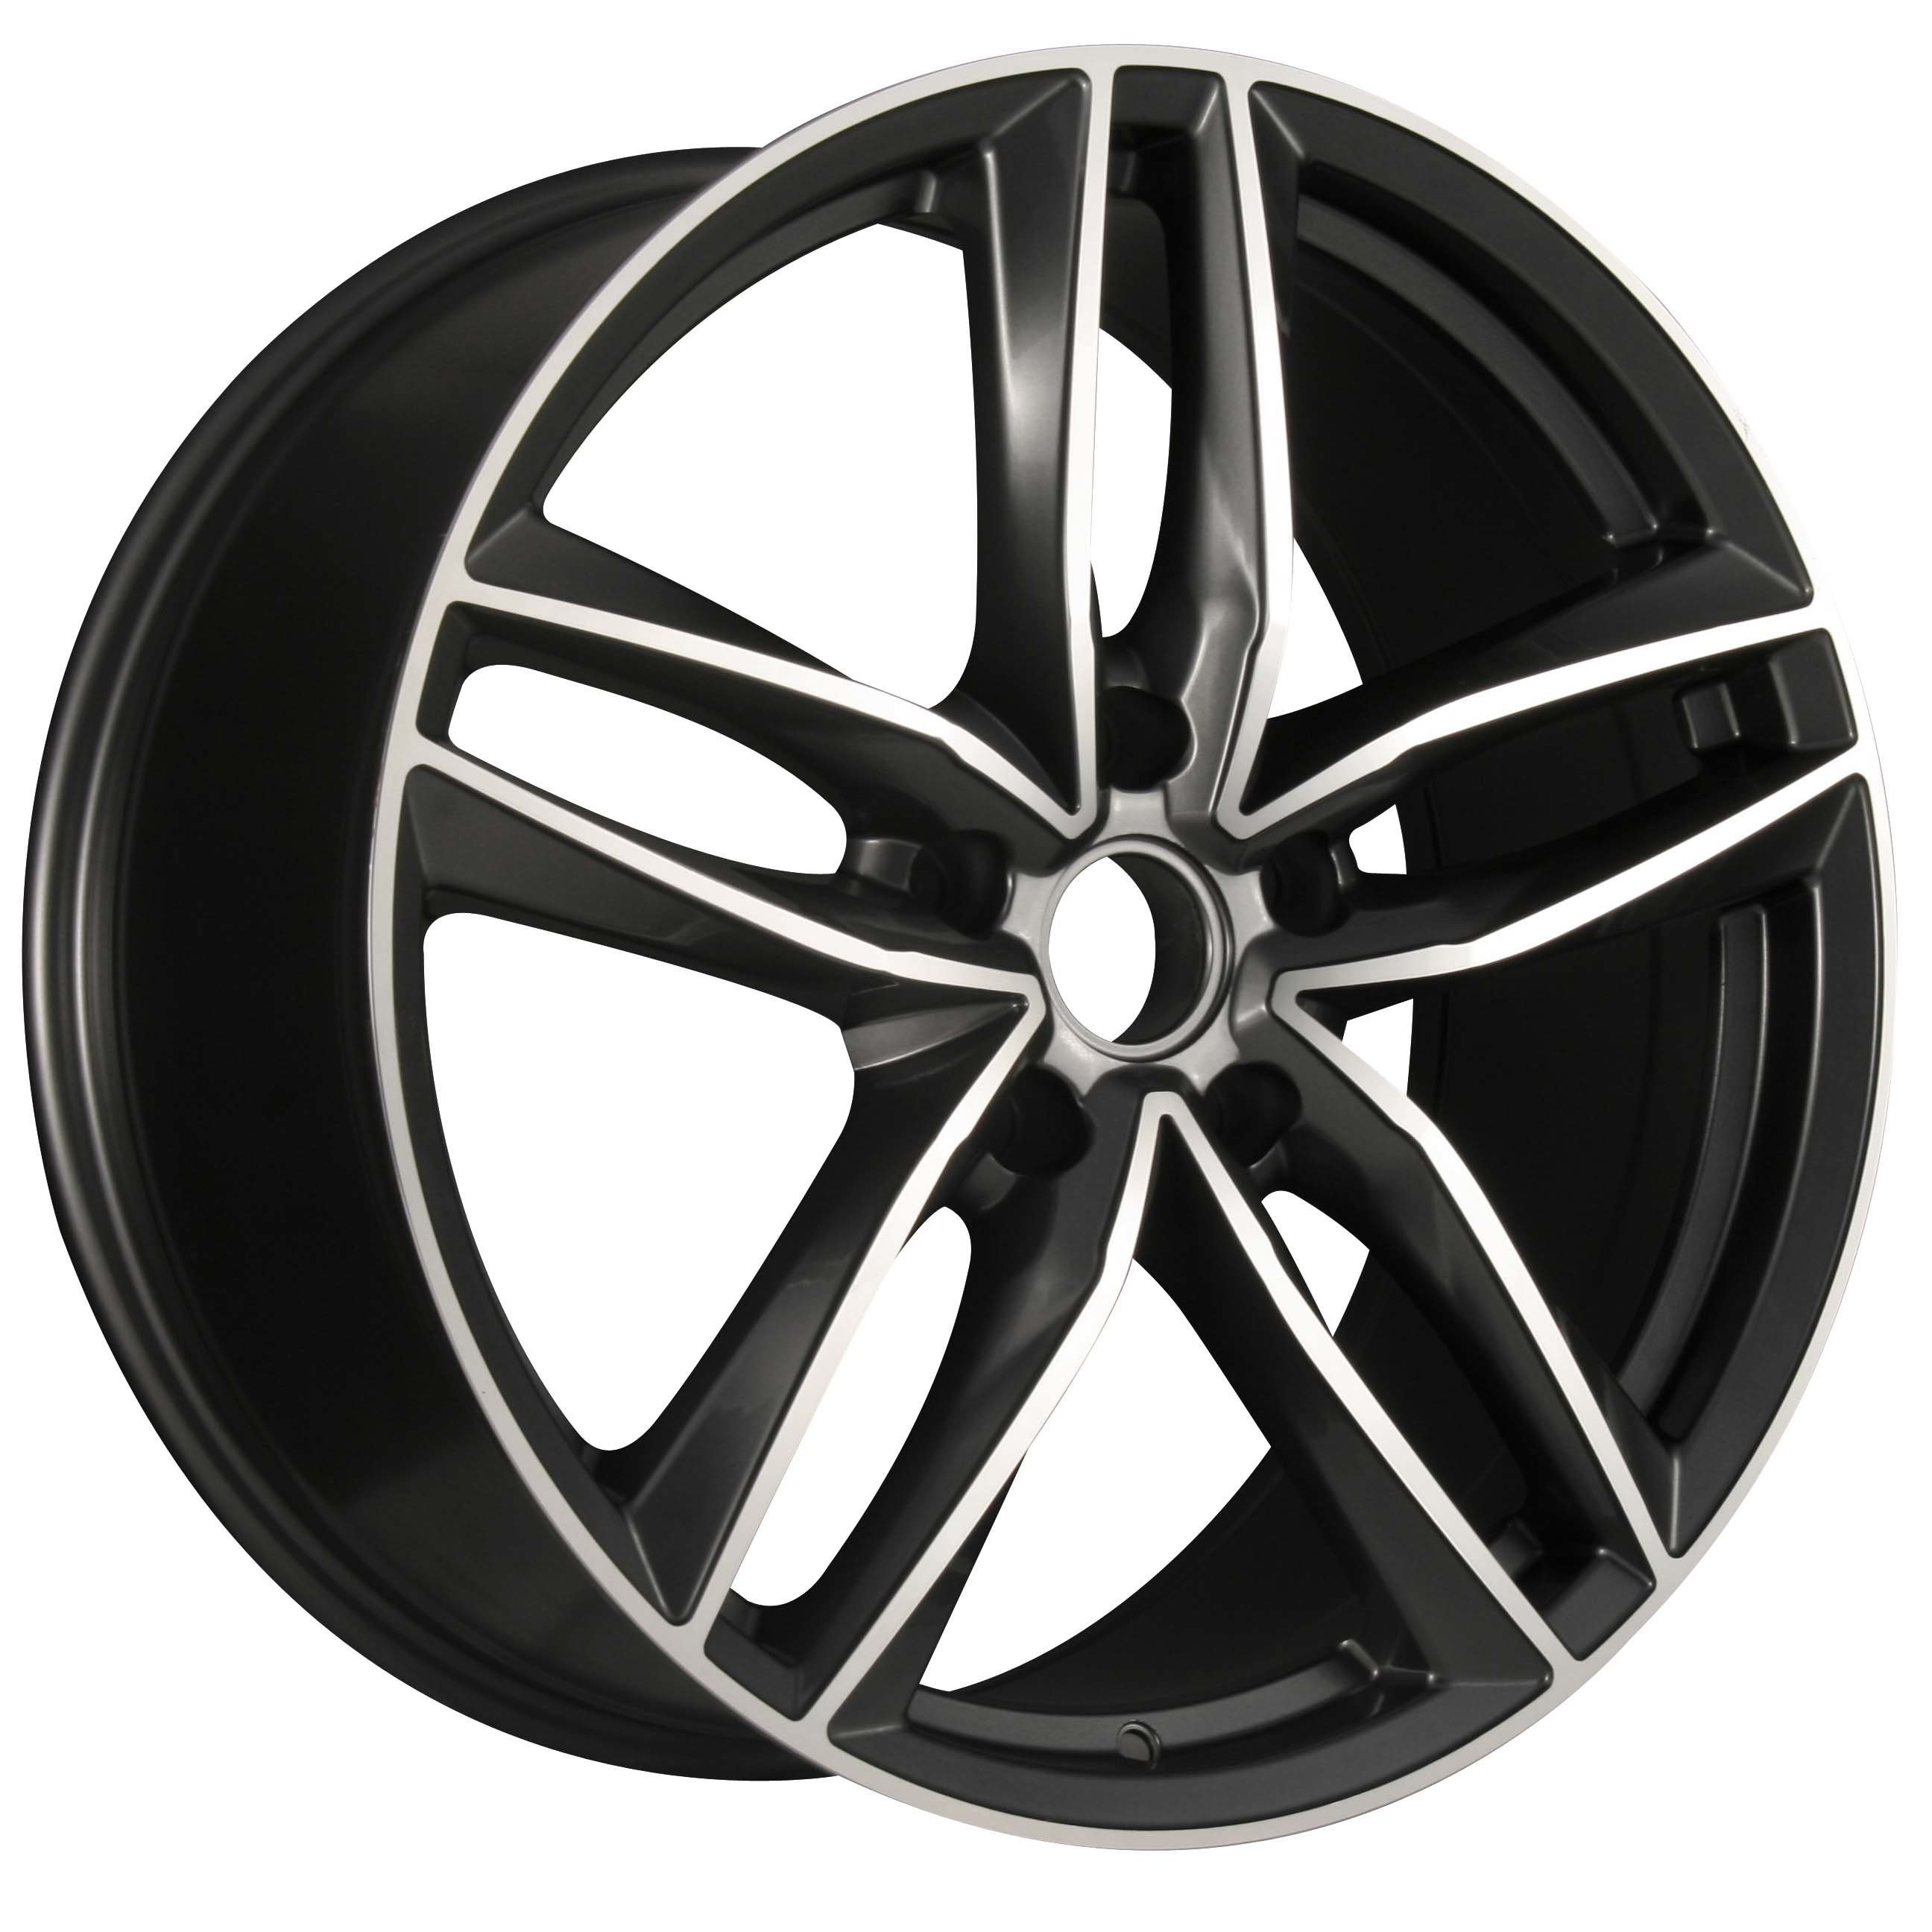 17inch Alloy Wheel Replica Wheel for Audi RS6